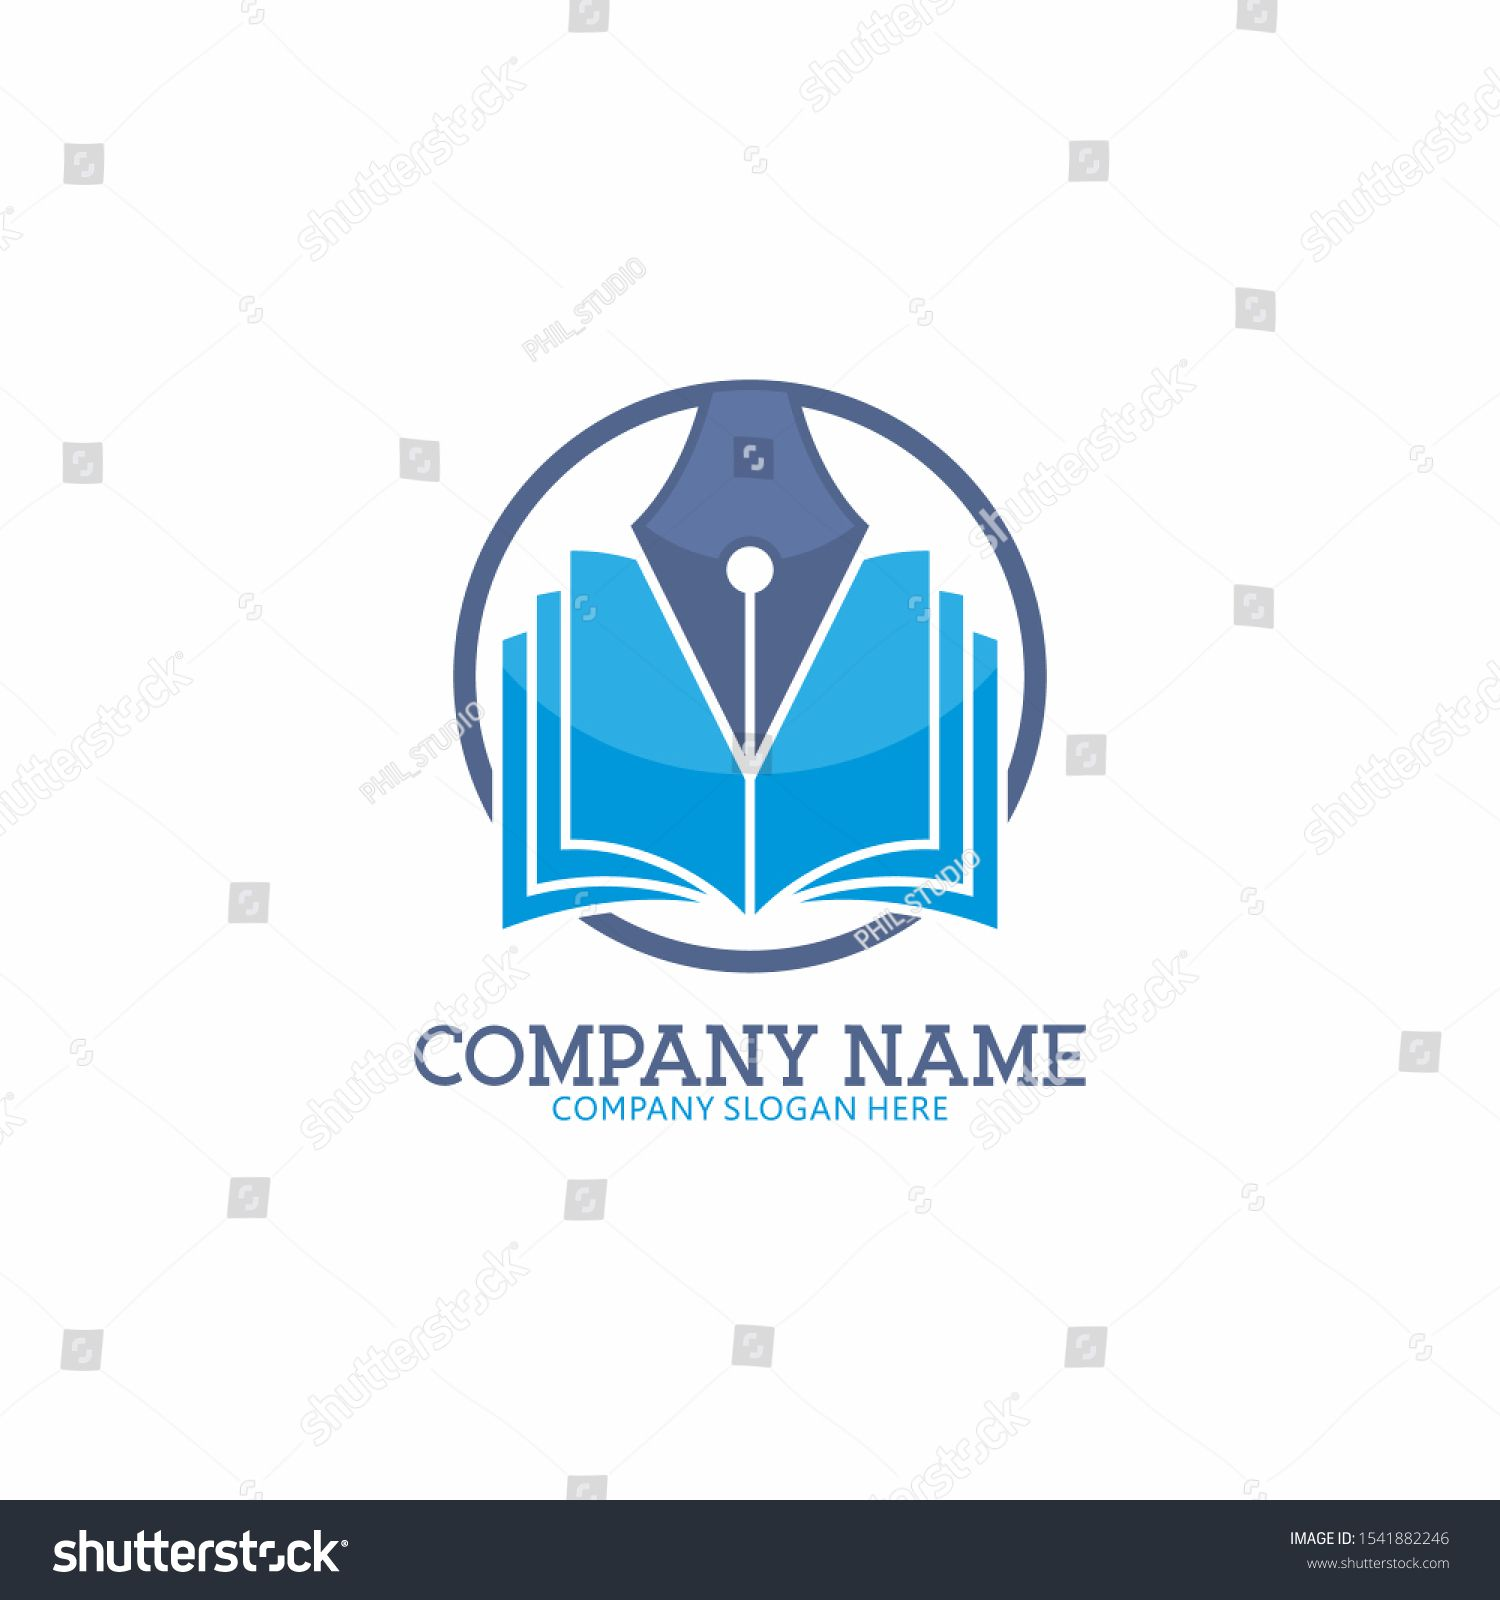 Education Logo Design With Open Book And Writing Pen Knowledge